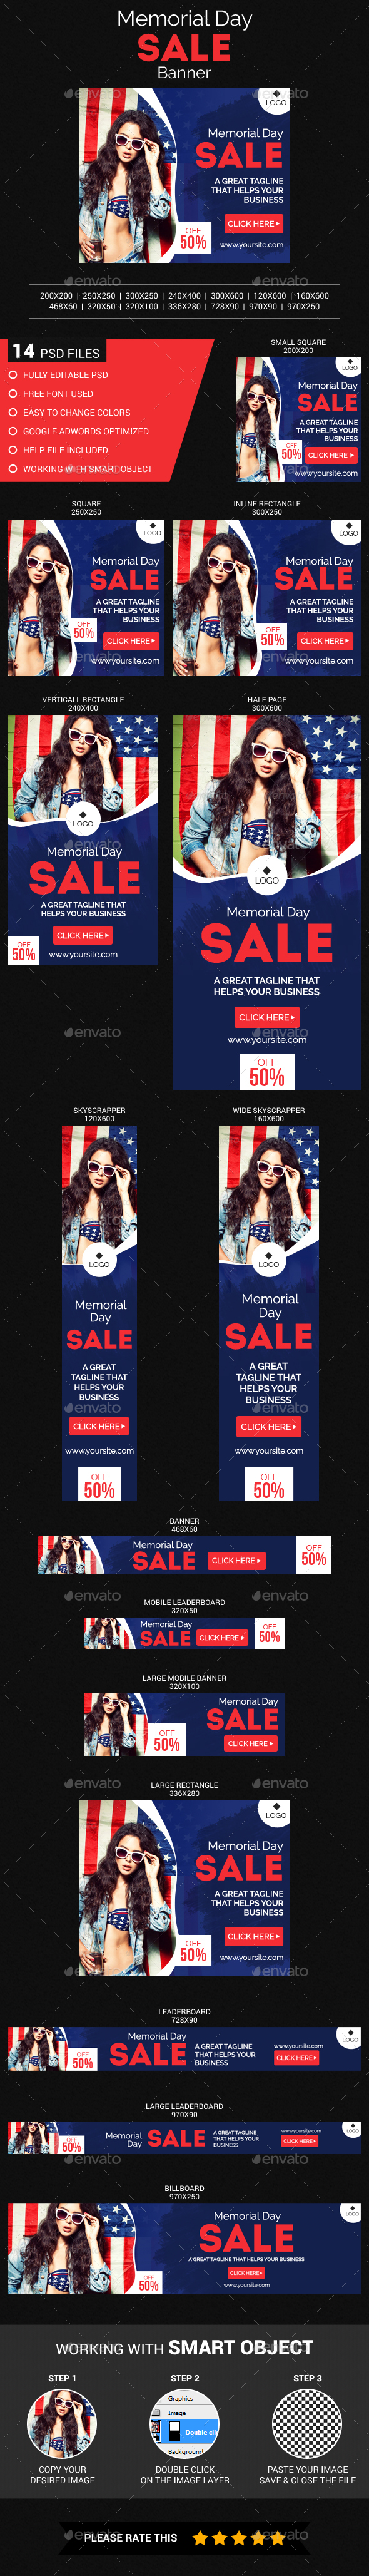 Memorial Day Sale - Banners & Ads Web Elements